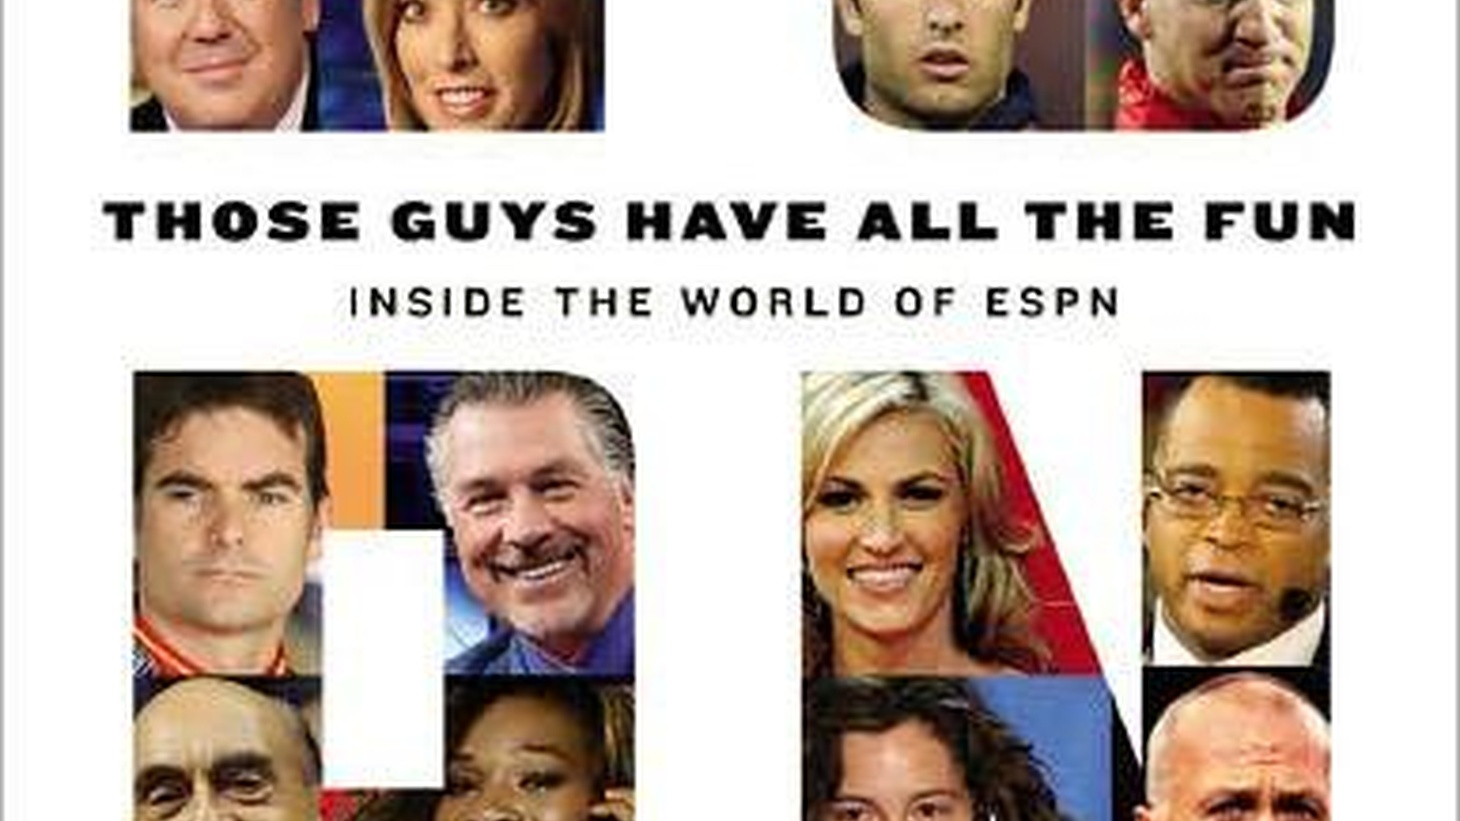 Author James Miller puts ESPN under the microscope in his book Those Guys Have All the Fun: Inside the World of ESPN.